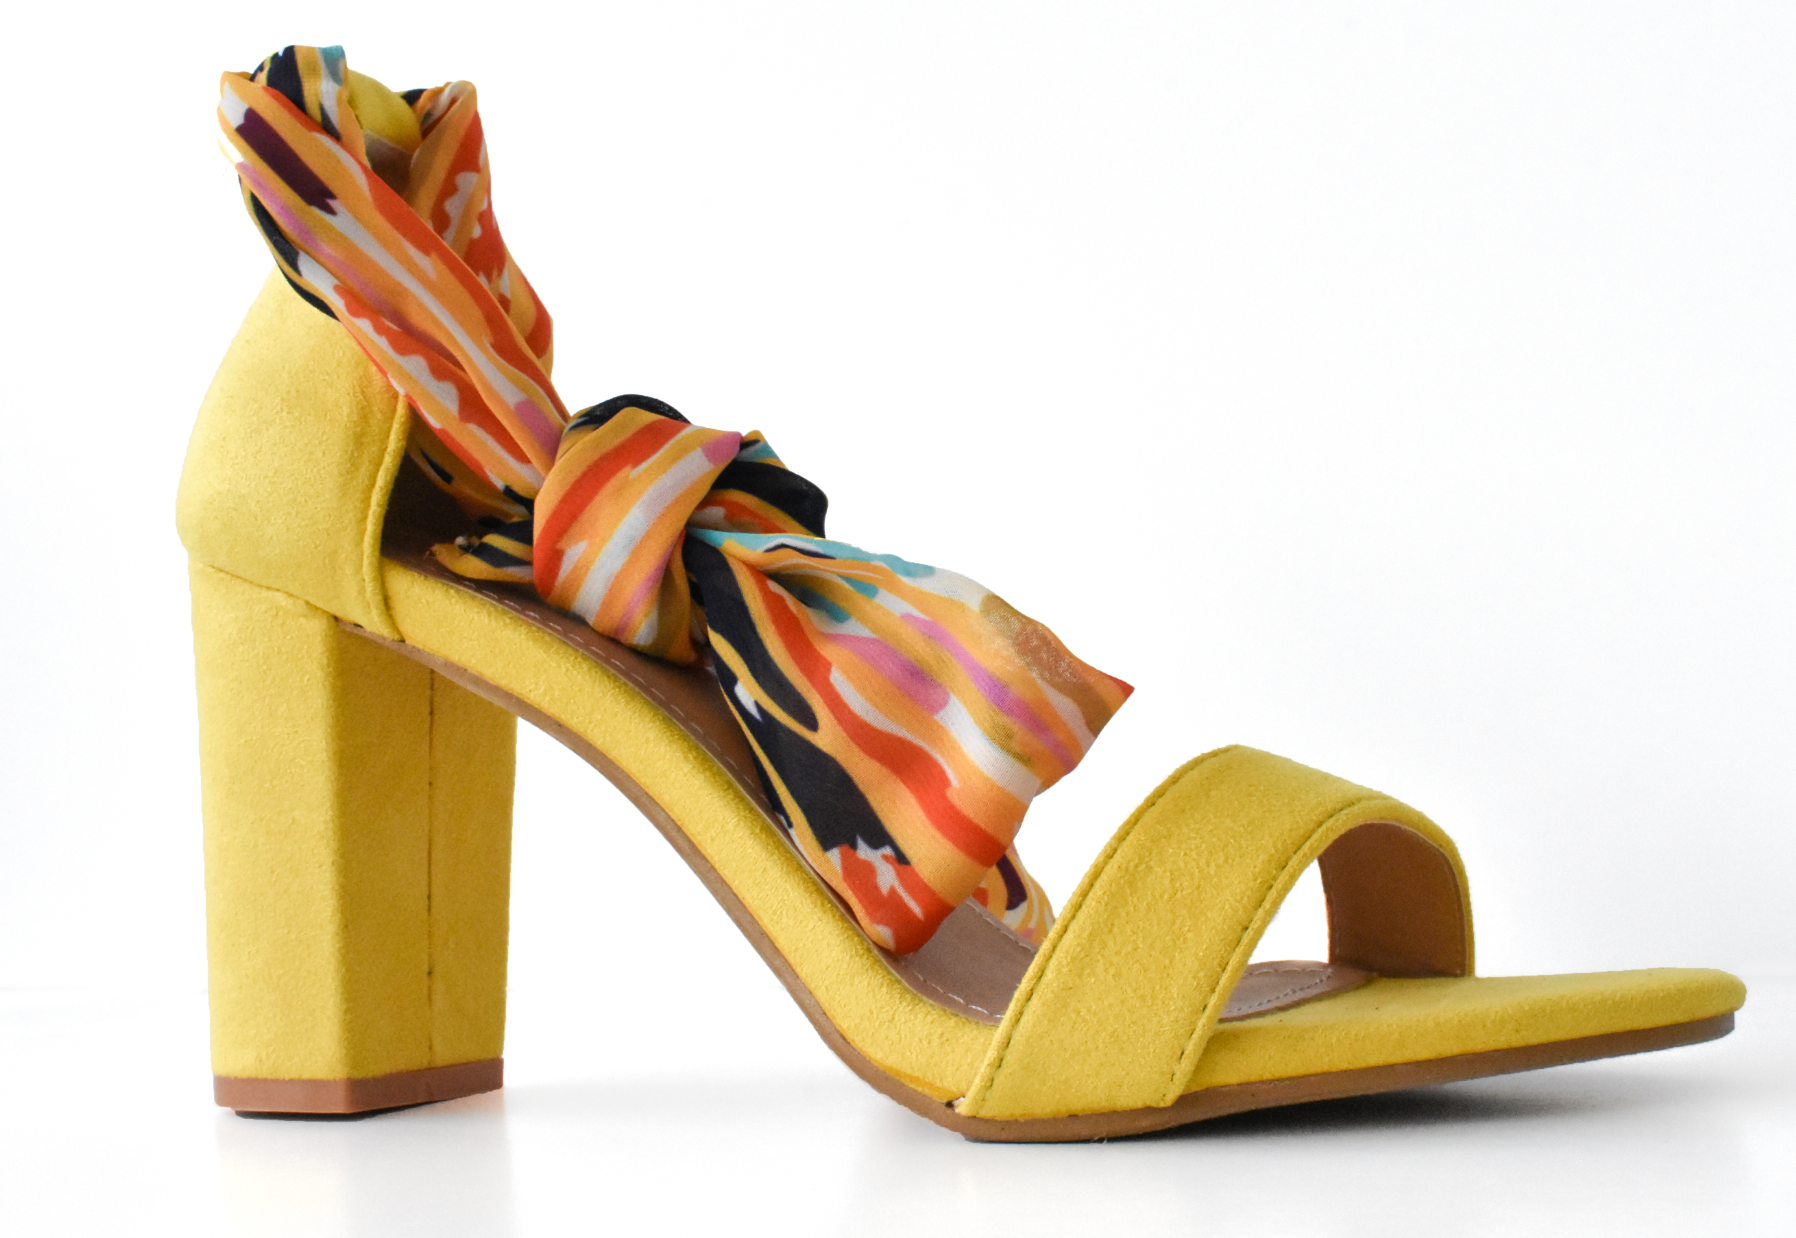 Ginger Yellow Sandals